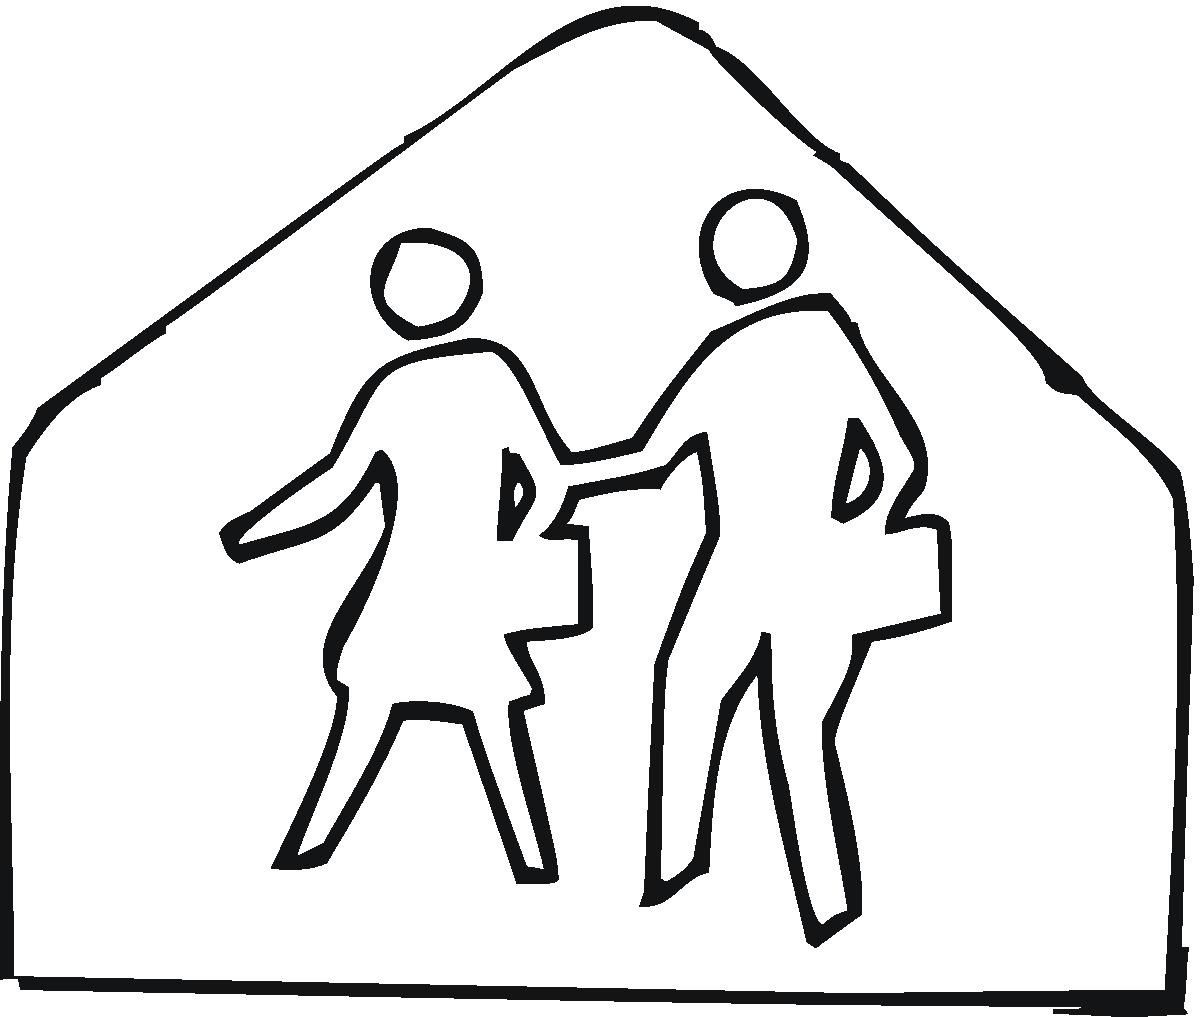 Road Signs Coloring Pages At Getdrawings Com Free For Personal Use